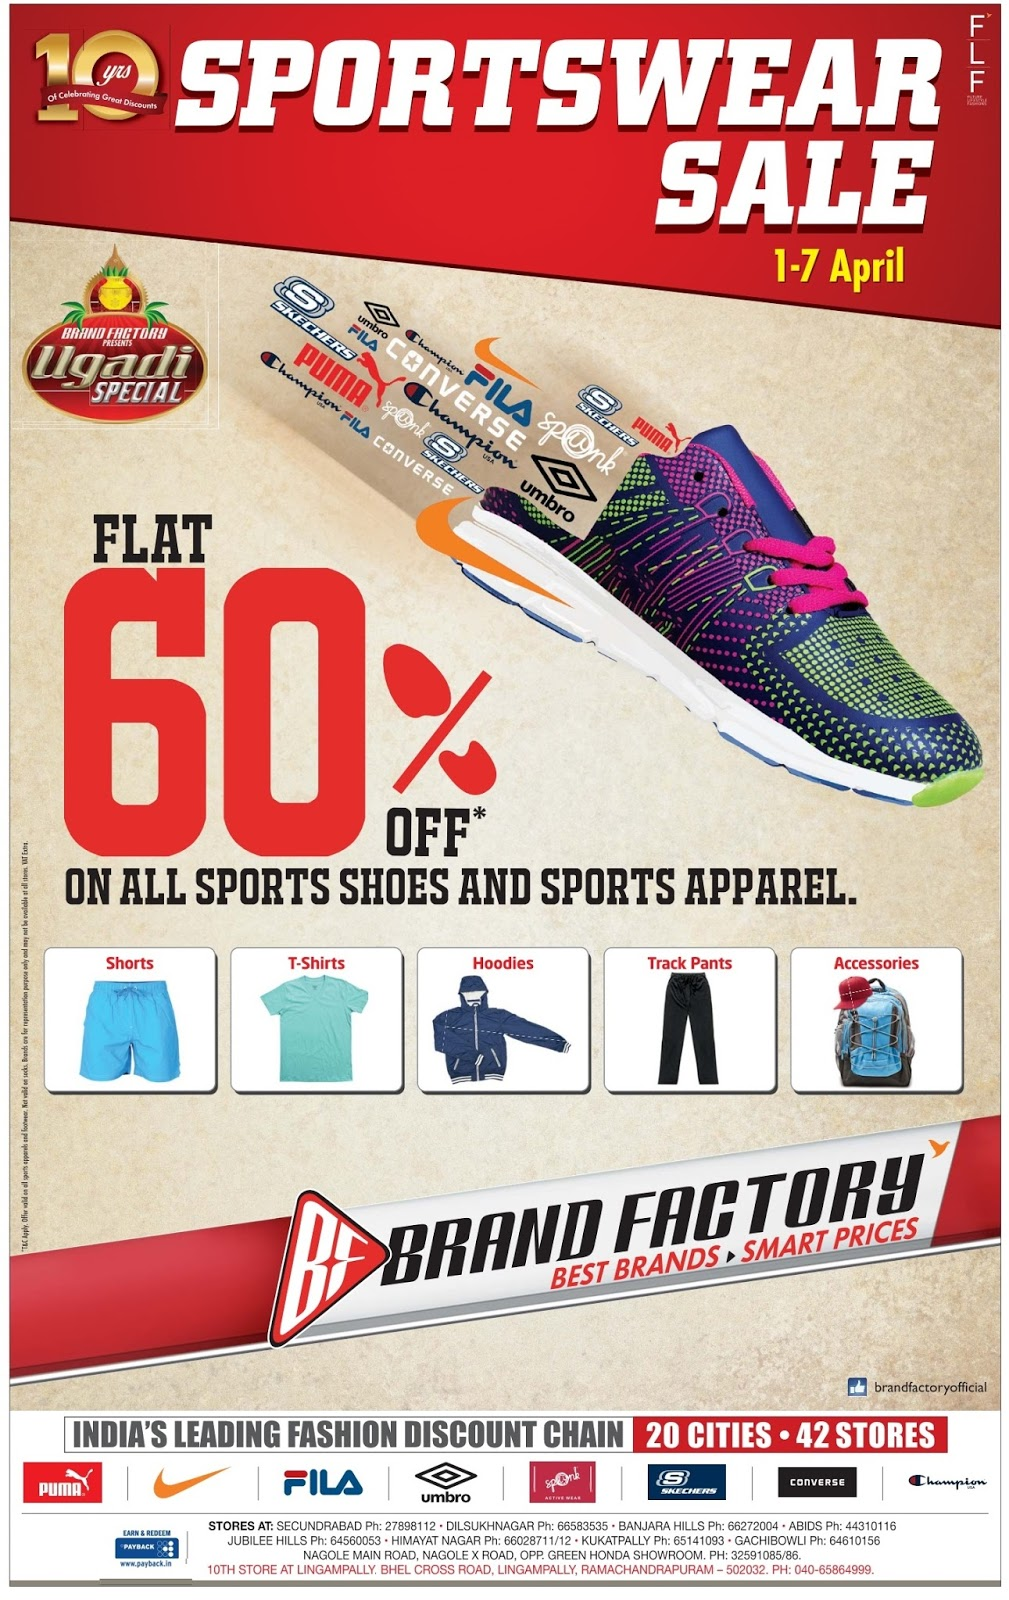 Flat 60% off on Sports wear in Brand factory | April 2016 discount offer